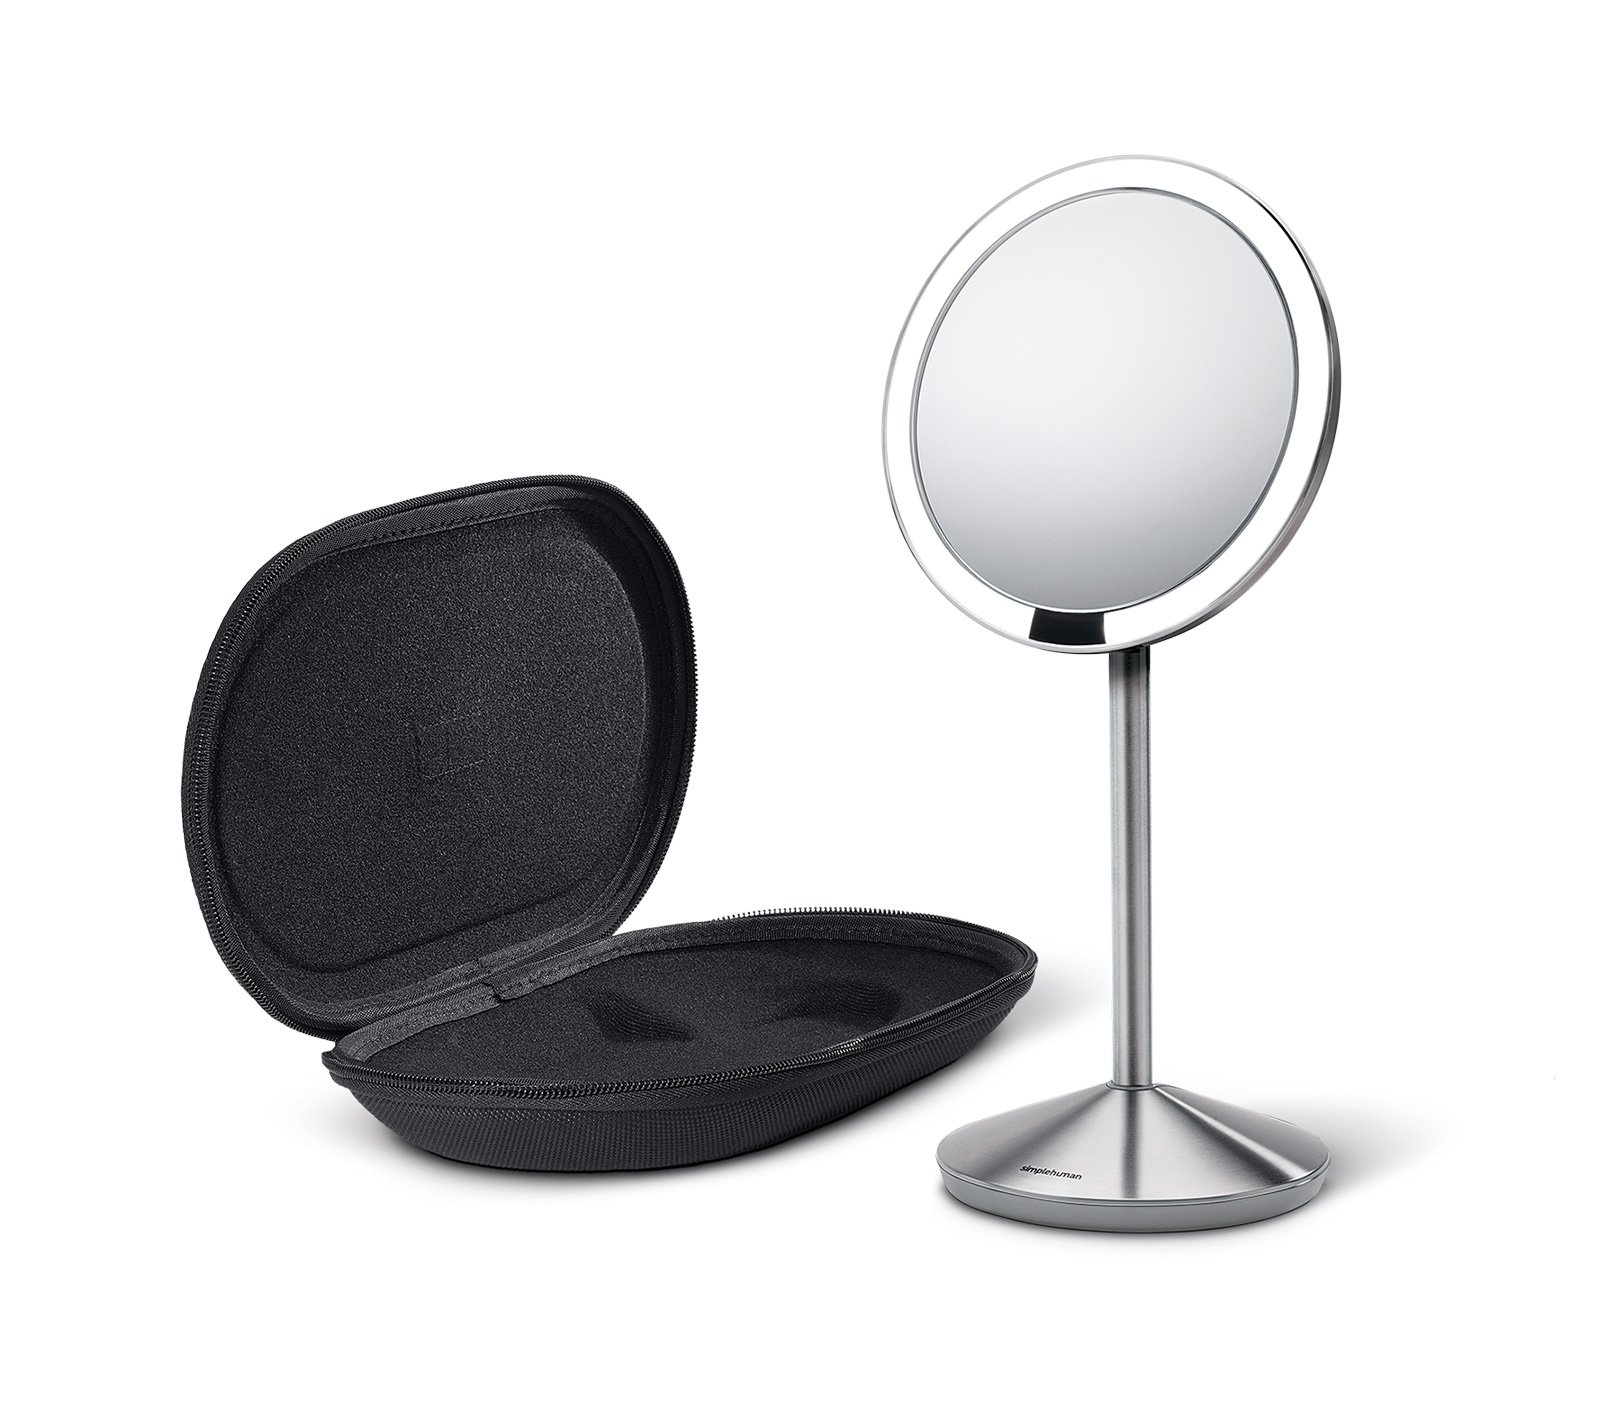 simplehuman 5 inch Sensor Mirror, Lighted Makeup Mirror, 10x Magnification by simplehuman (Image #1)